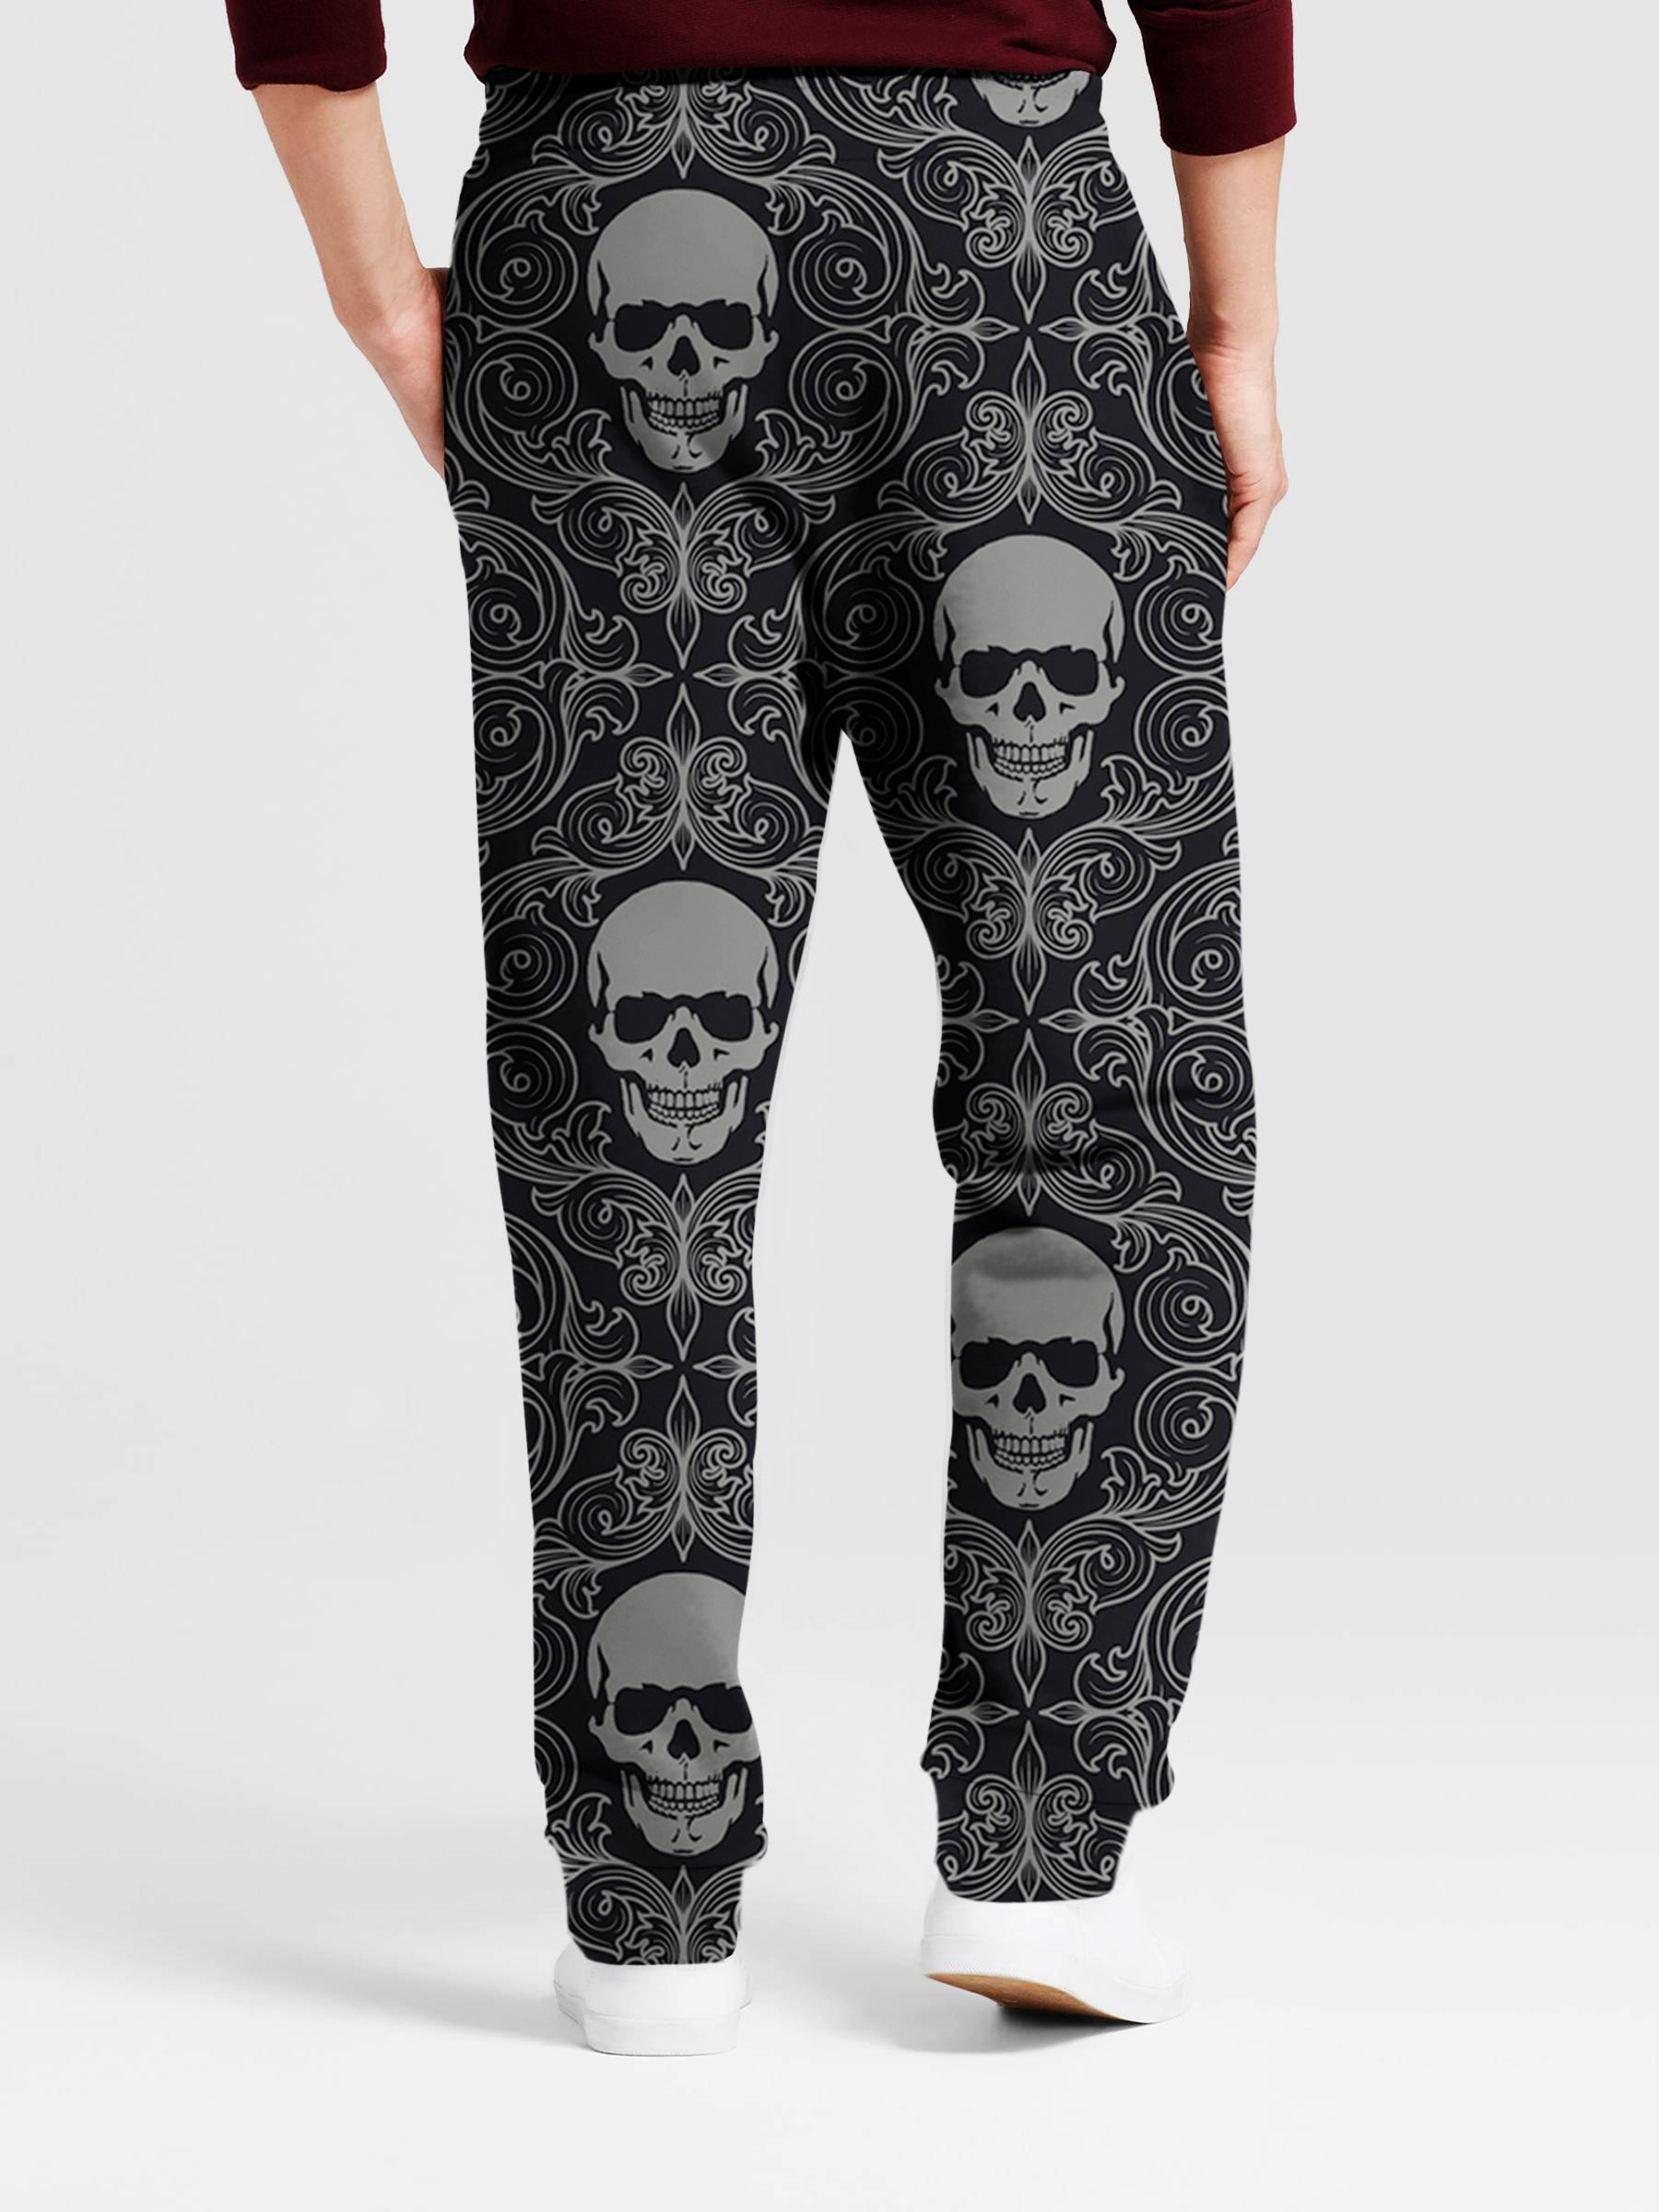 Skull 3D Art Pants 008 - designfullprint